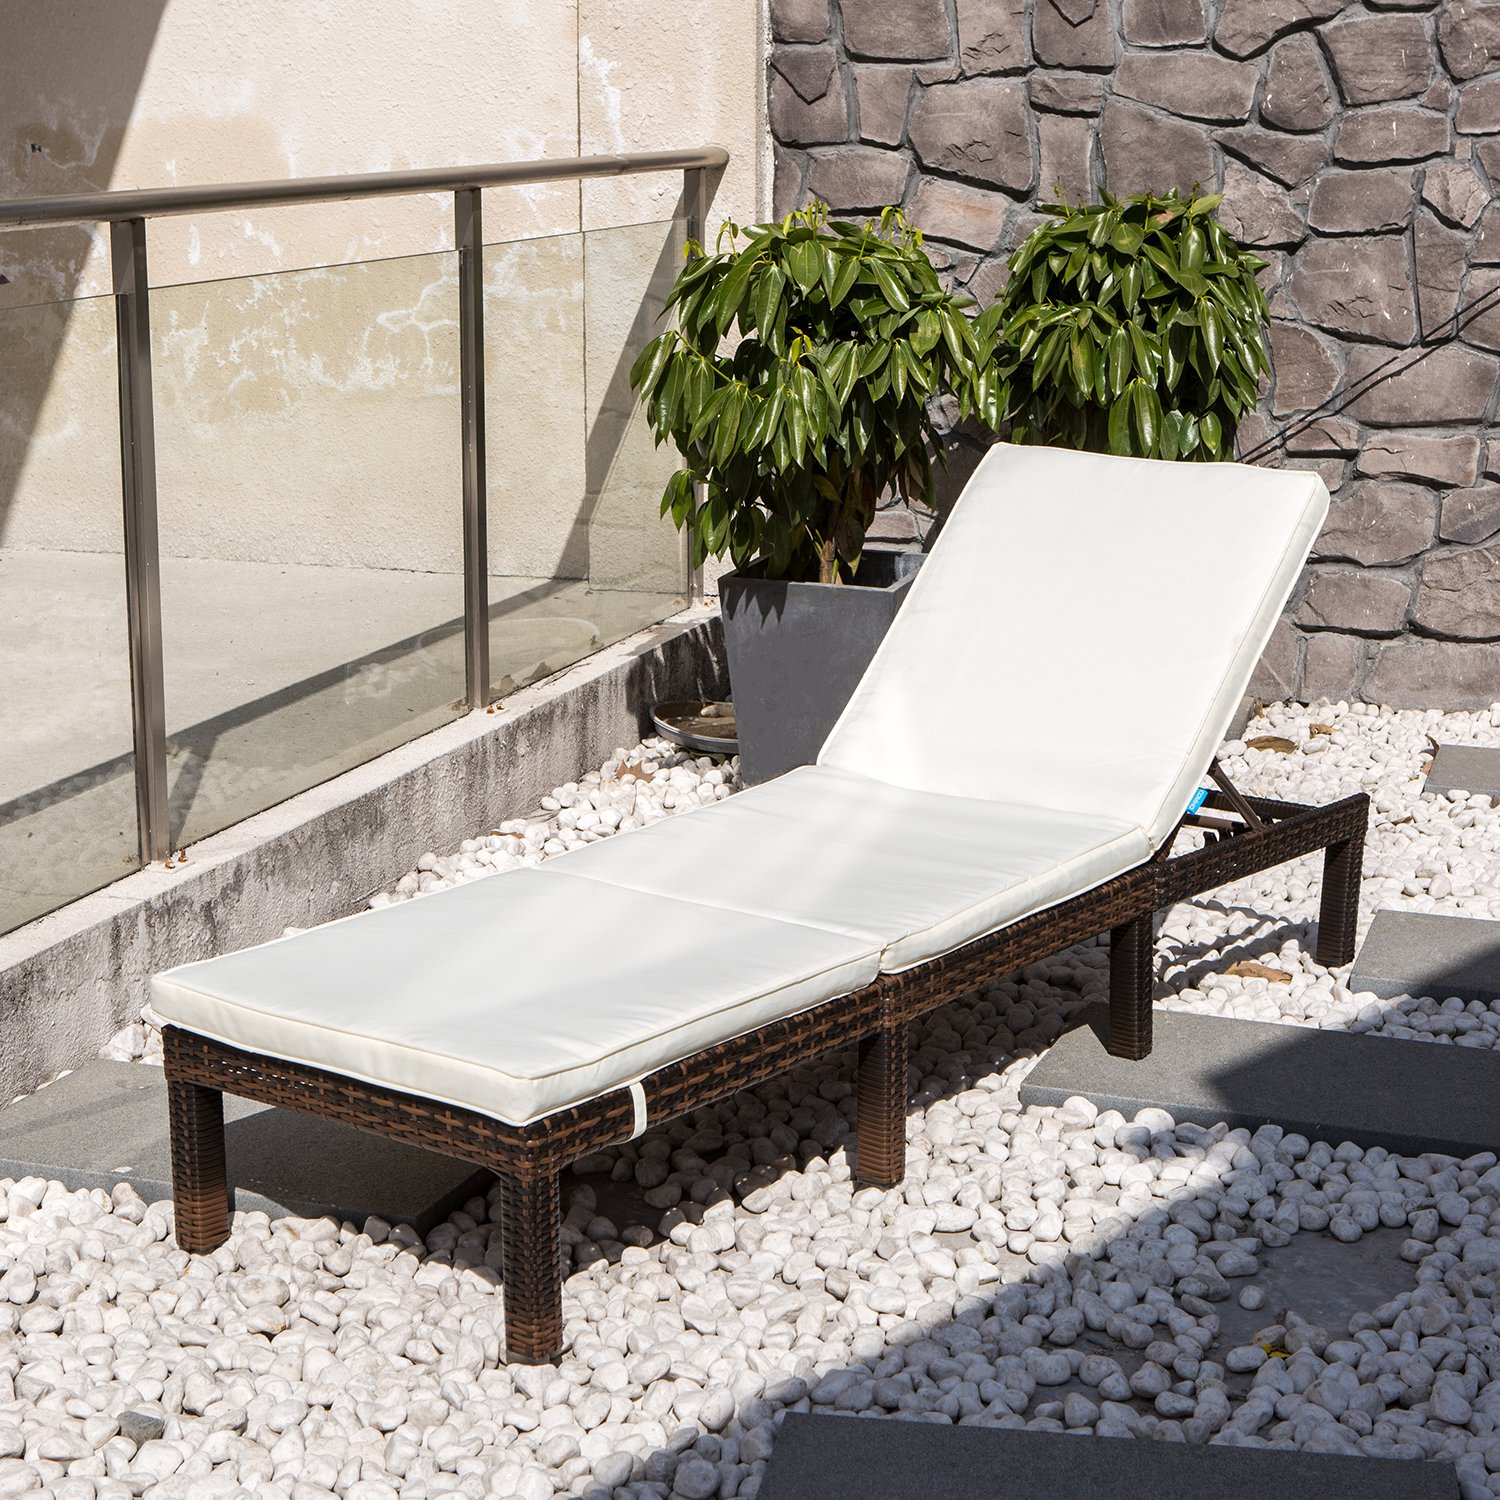 COMHO Patio Chaise Lounge Outdoor Adjustable Wicker Lounge Chairs with Cushions (1 Set S)